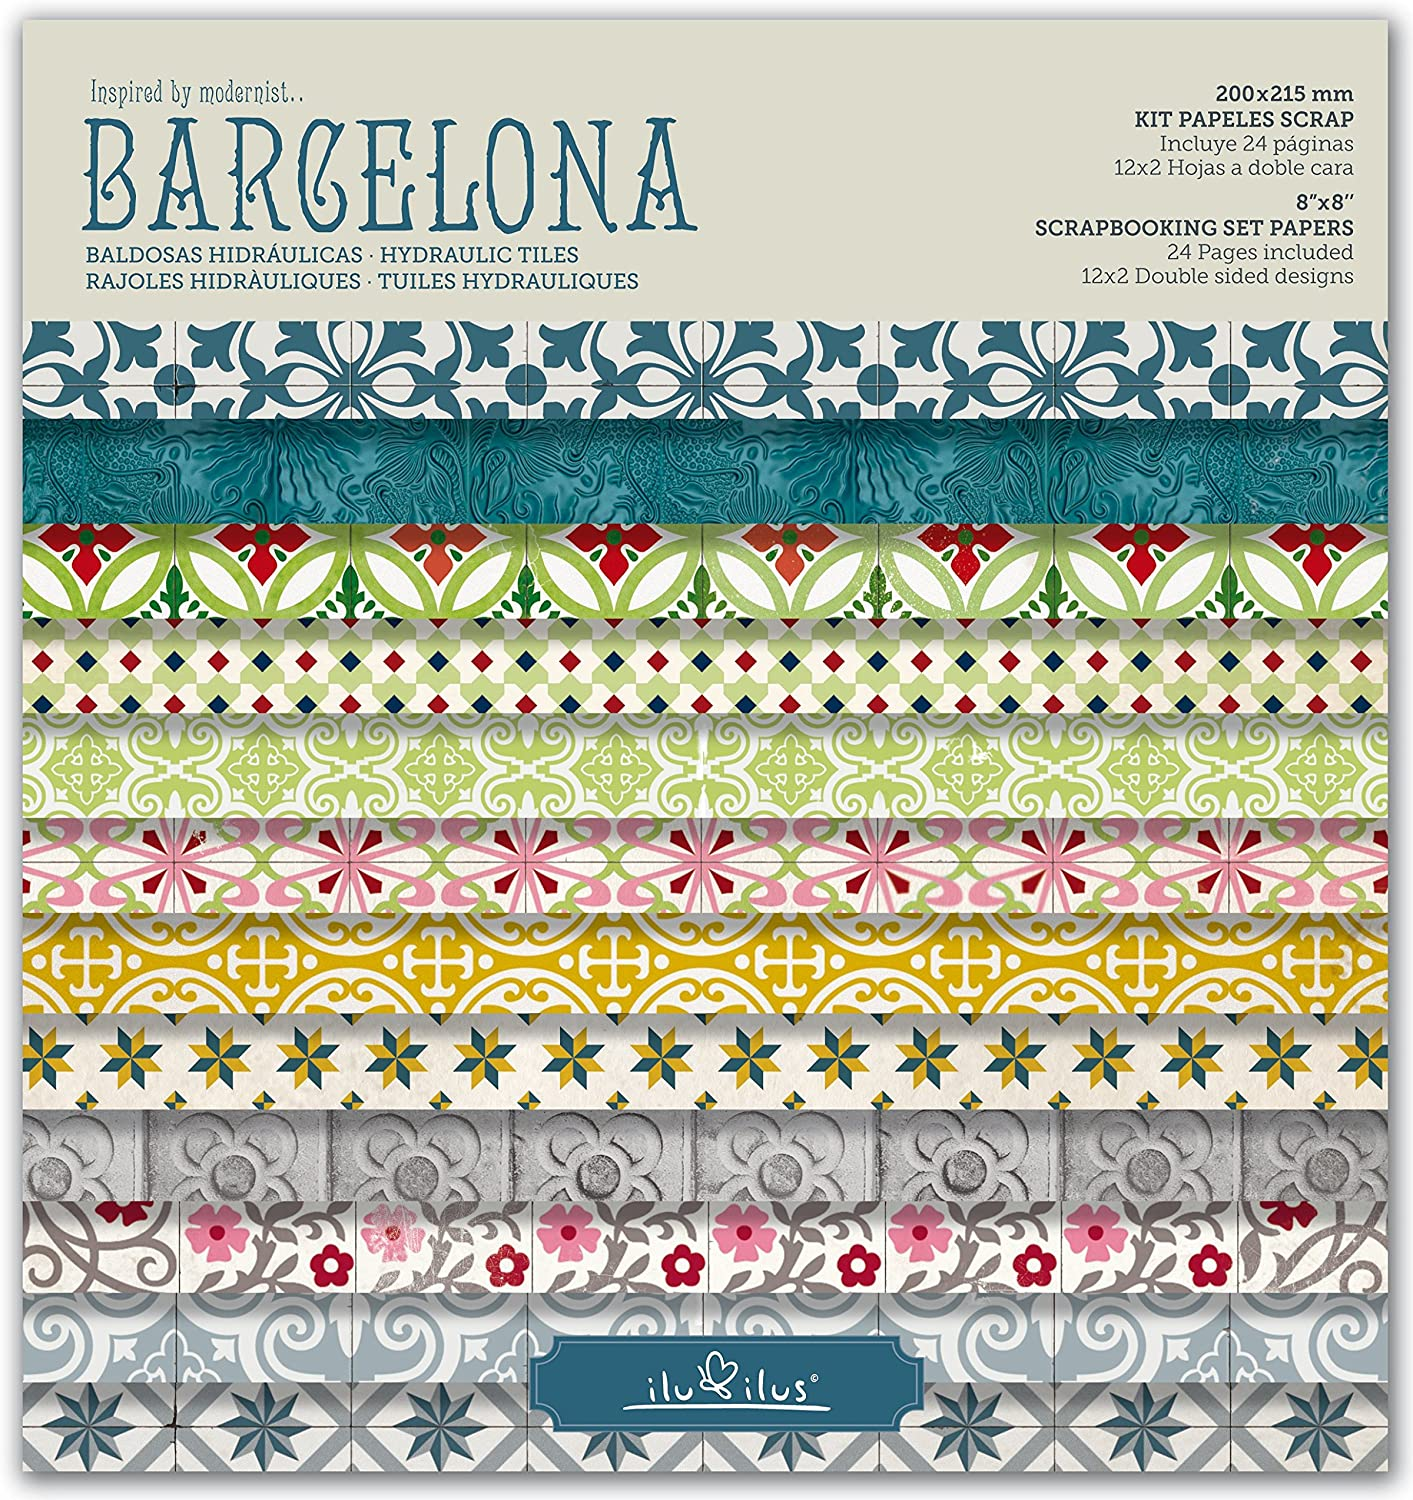 Scrapbook Barcelona - Pad 8-203mm // Kit papeles para scrapbooking: Amazon.es: Hogar